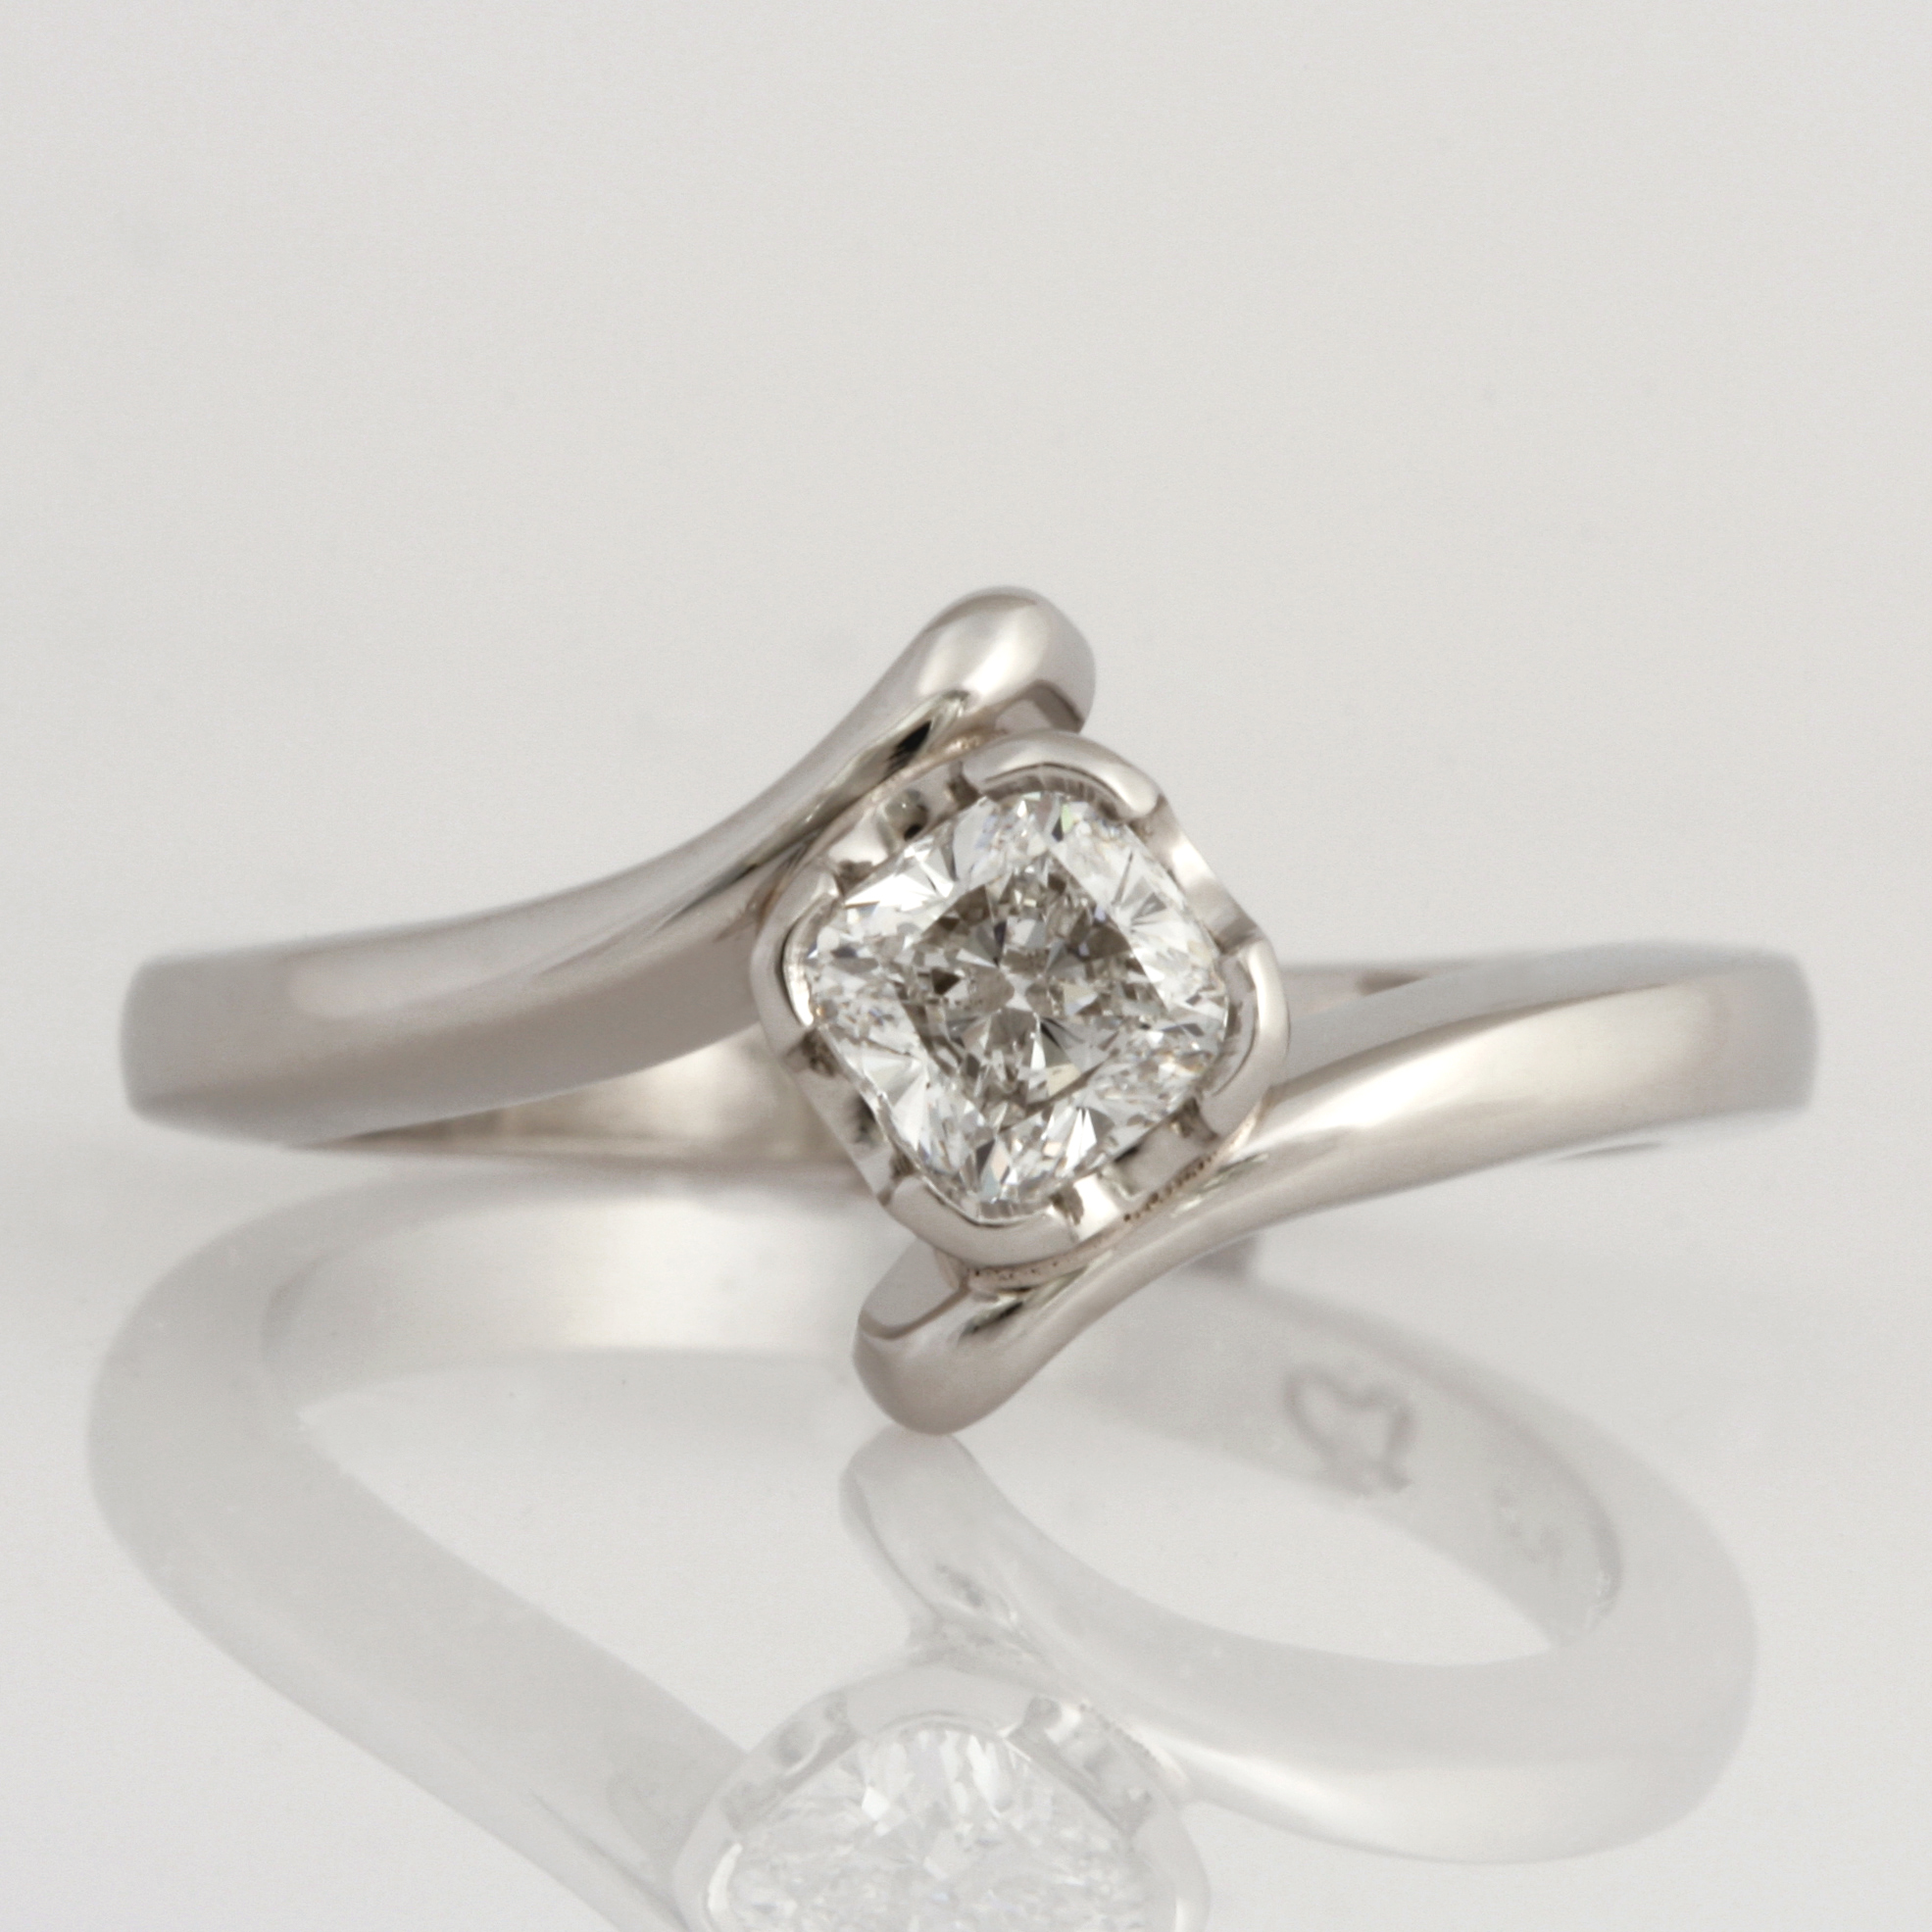 Handmade ladies platinum ring featuring a cushion cut diamond